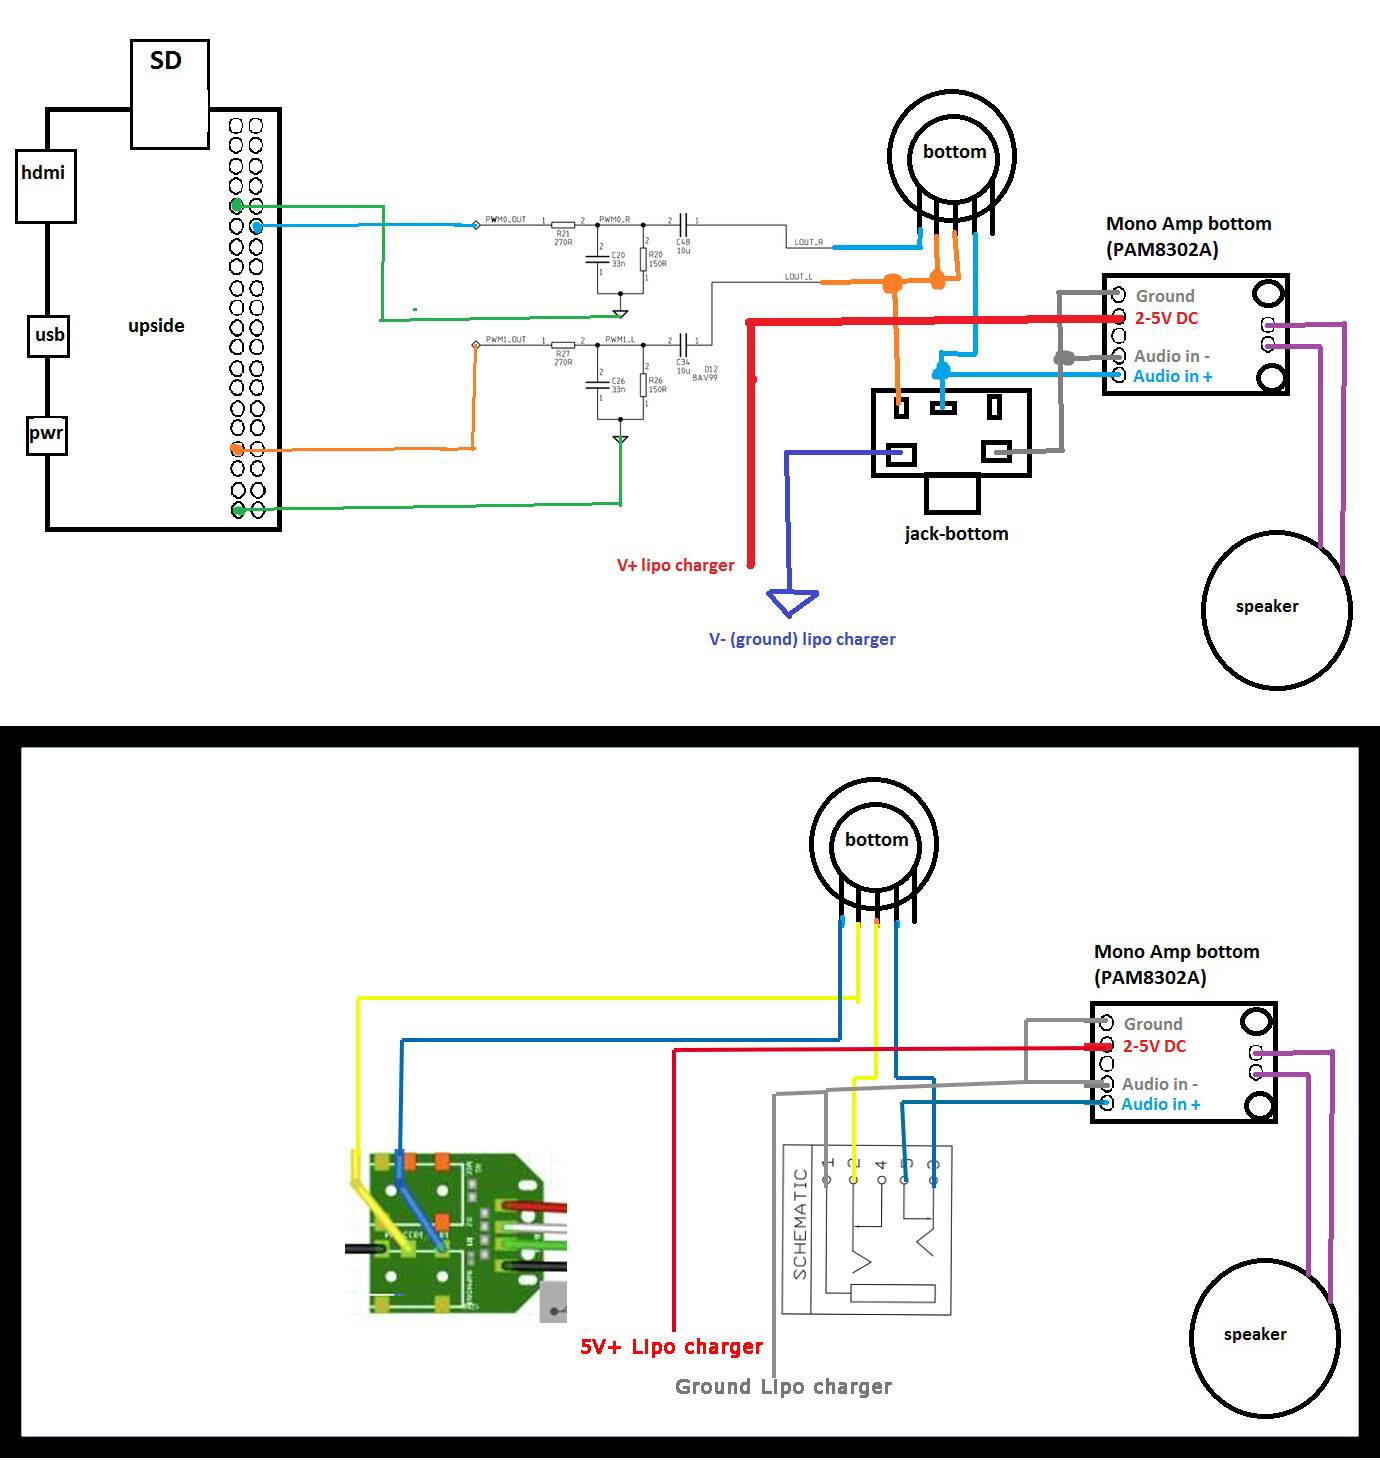 Usb To Headphone Jack Wiring Diagram | Manual E-Books - Usb To Audio Jack Wiring Diagram